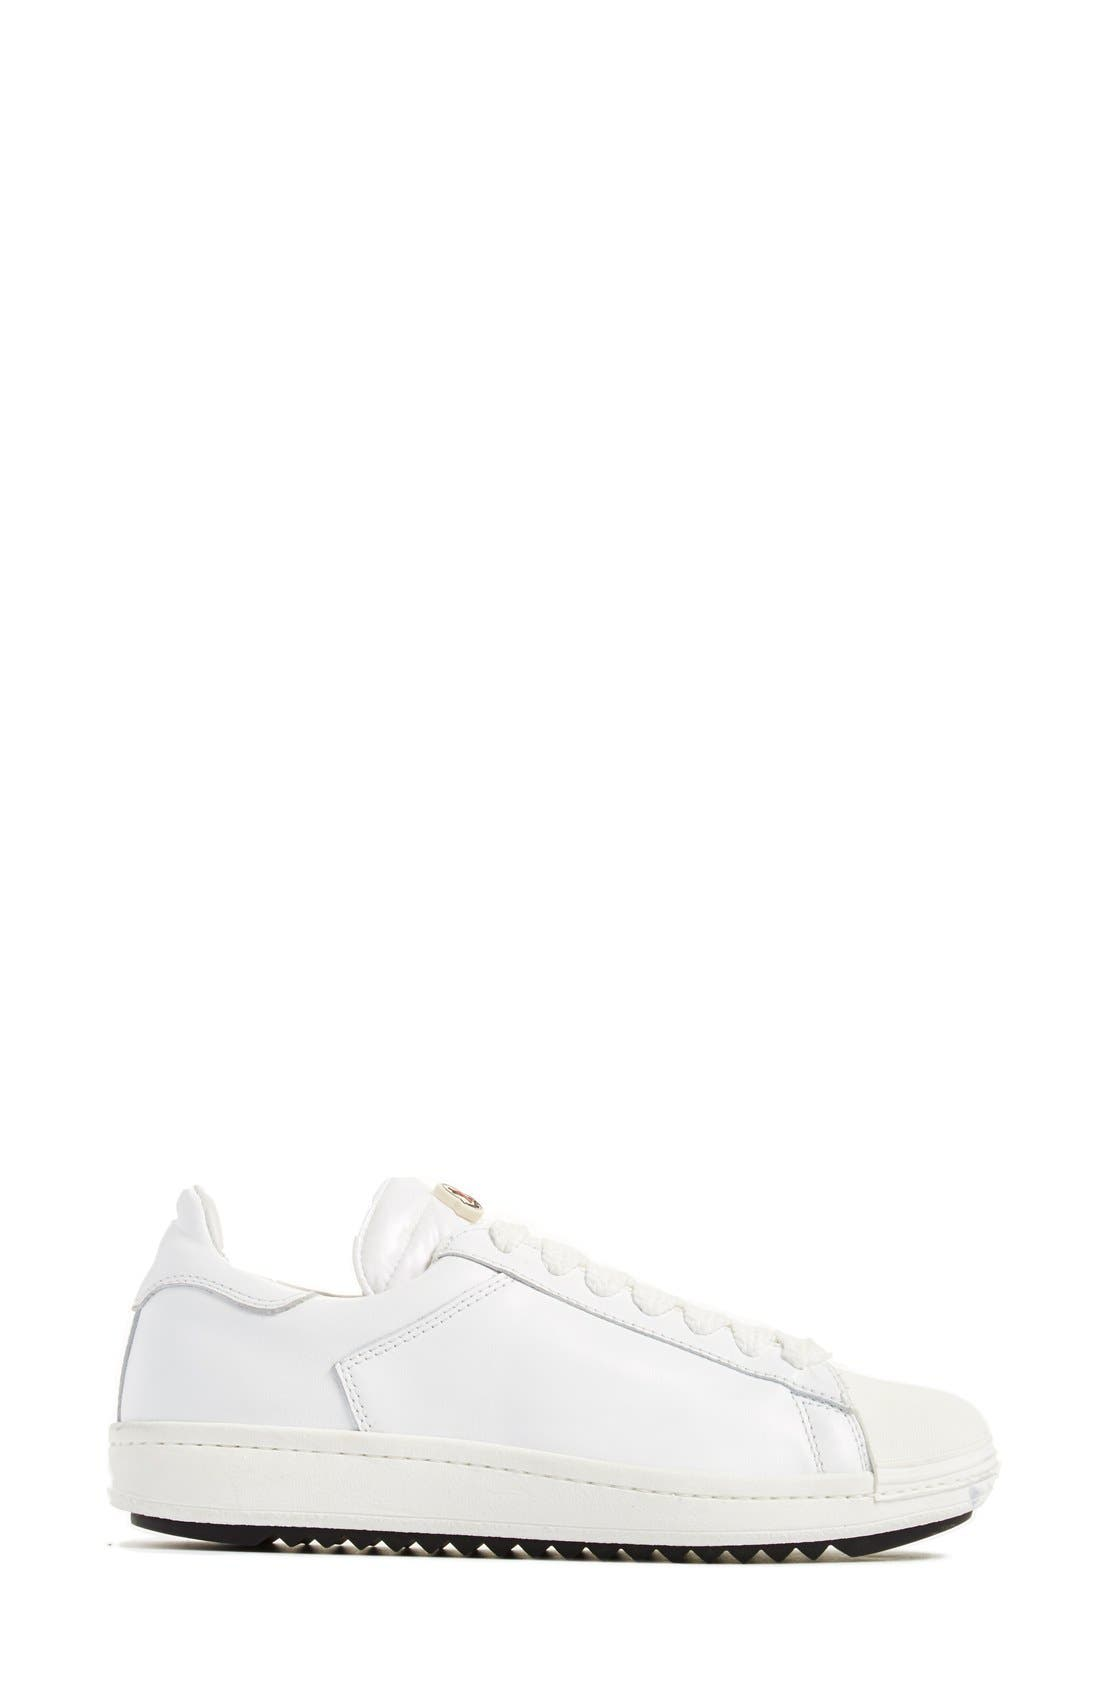 'Angeline Scarpa' Sneaker,                             Alternate thumbnail 5, color,                             White Leather